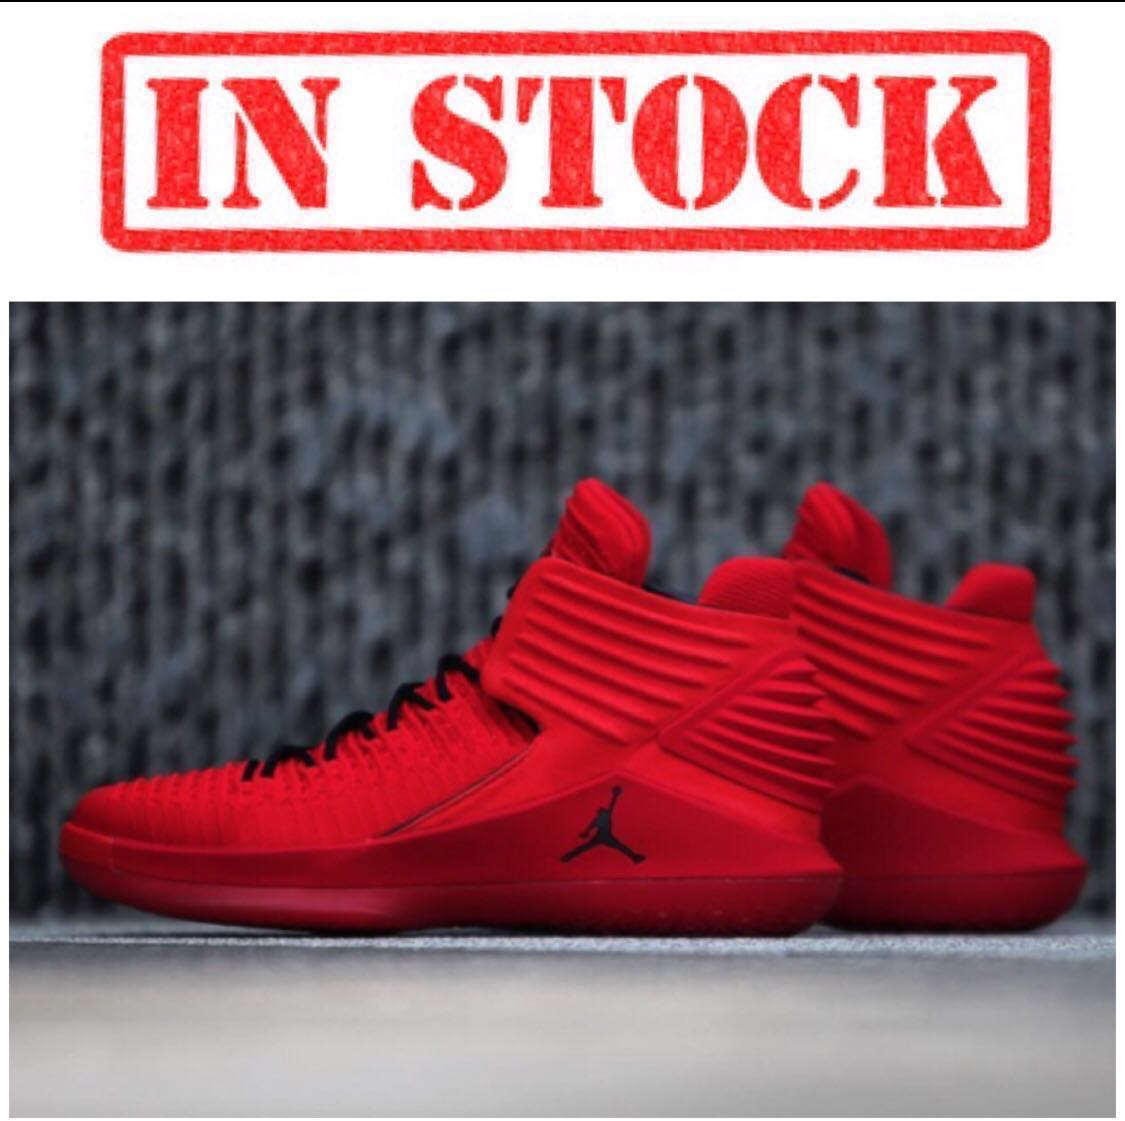 579d9ce6a89 In Stock Men s Air Jordan XXXII ROSSO CORSA Basketball Shoes ...